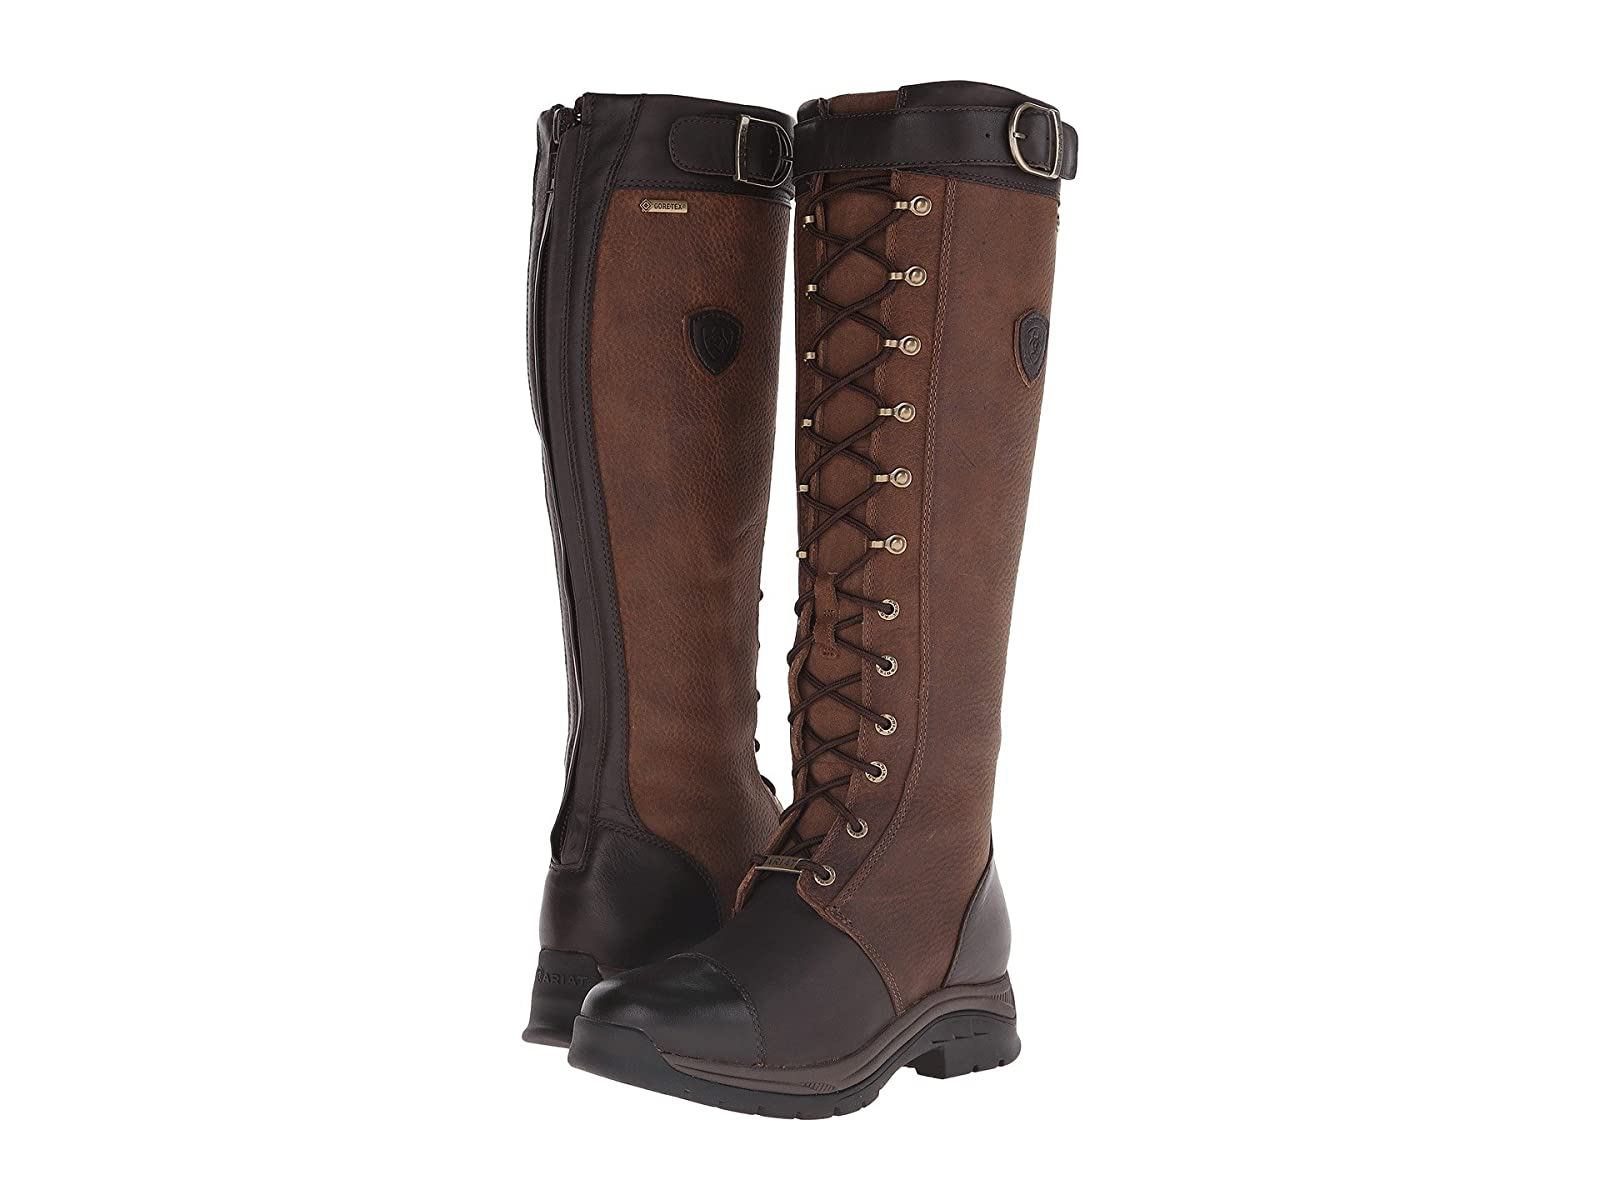 Ariat Berwick GTX InsulatedSelling fashionable and eye-catching shoes